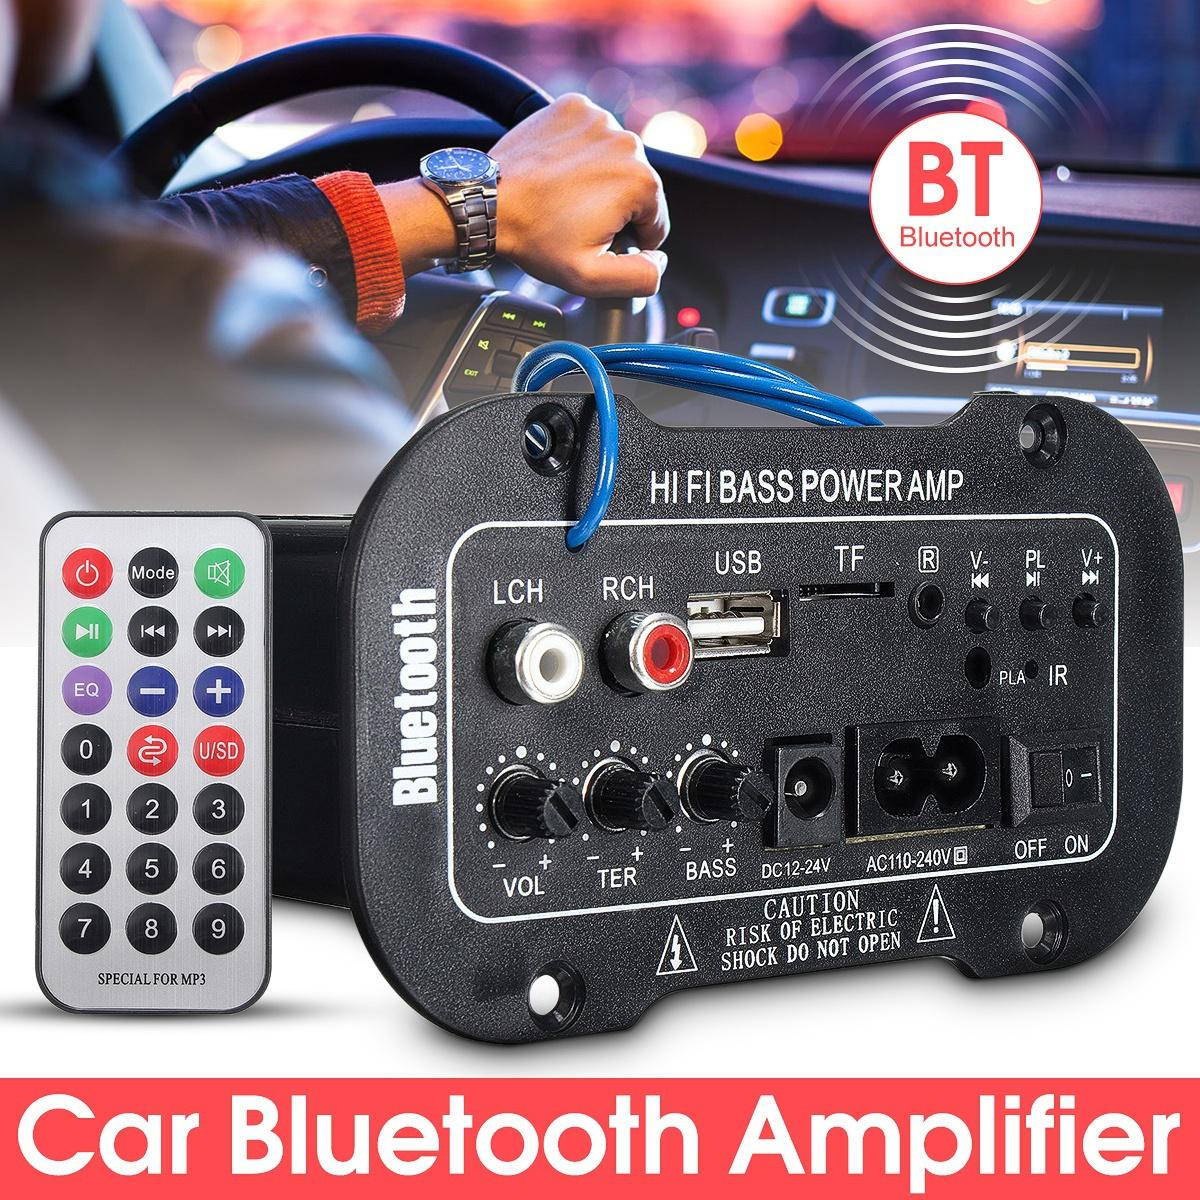 Wholesale Black Bluetooth Vintage Car Radio Mp3 From China: DHL Universal Bluetooth Car Stereo Audio Digital Amplifier